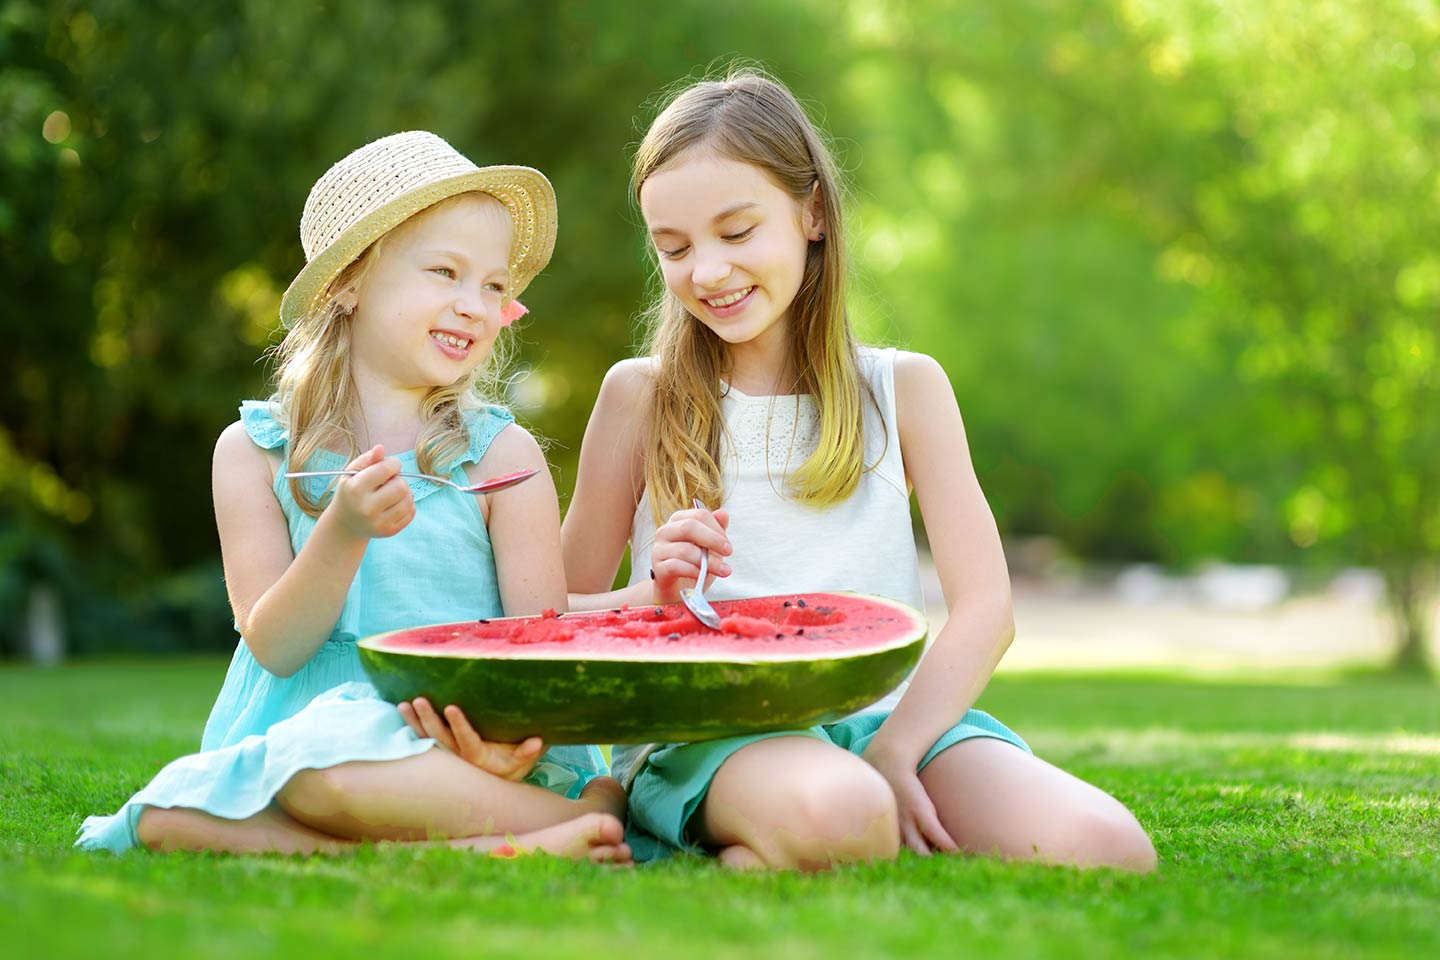 2 girls eating a watermelon on the lawn